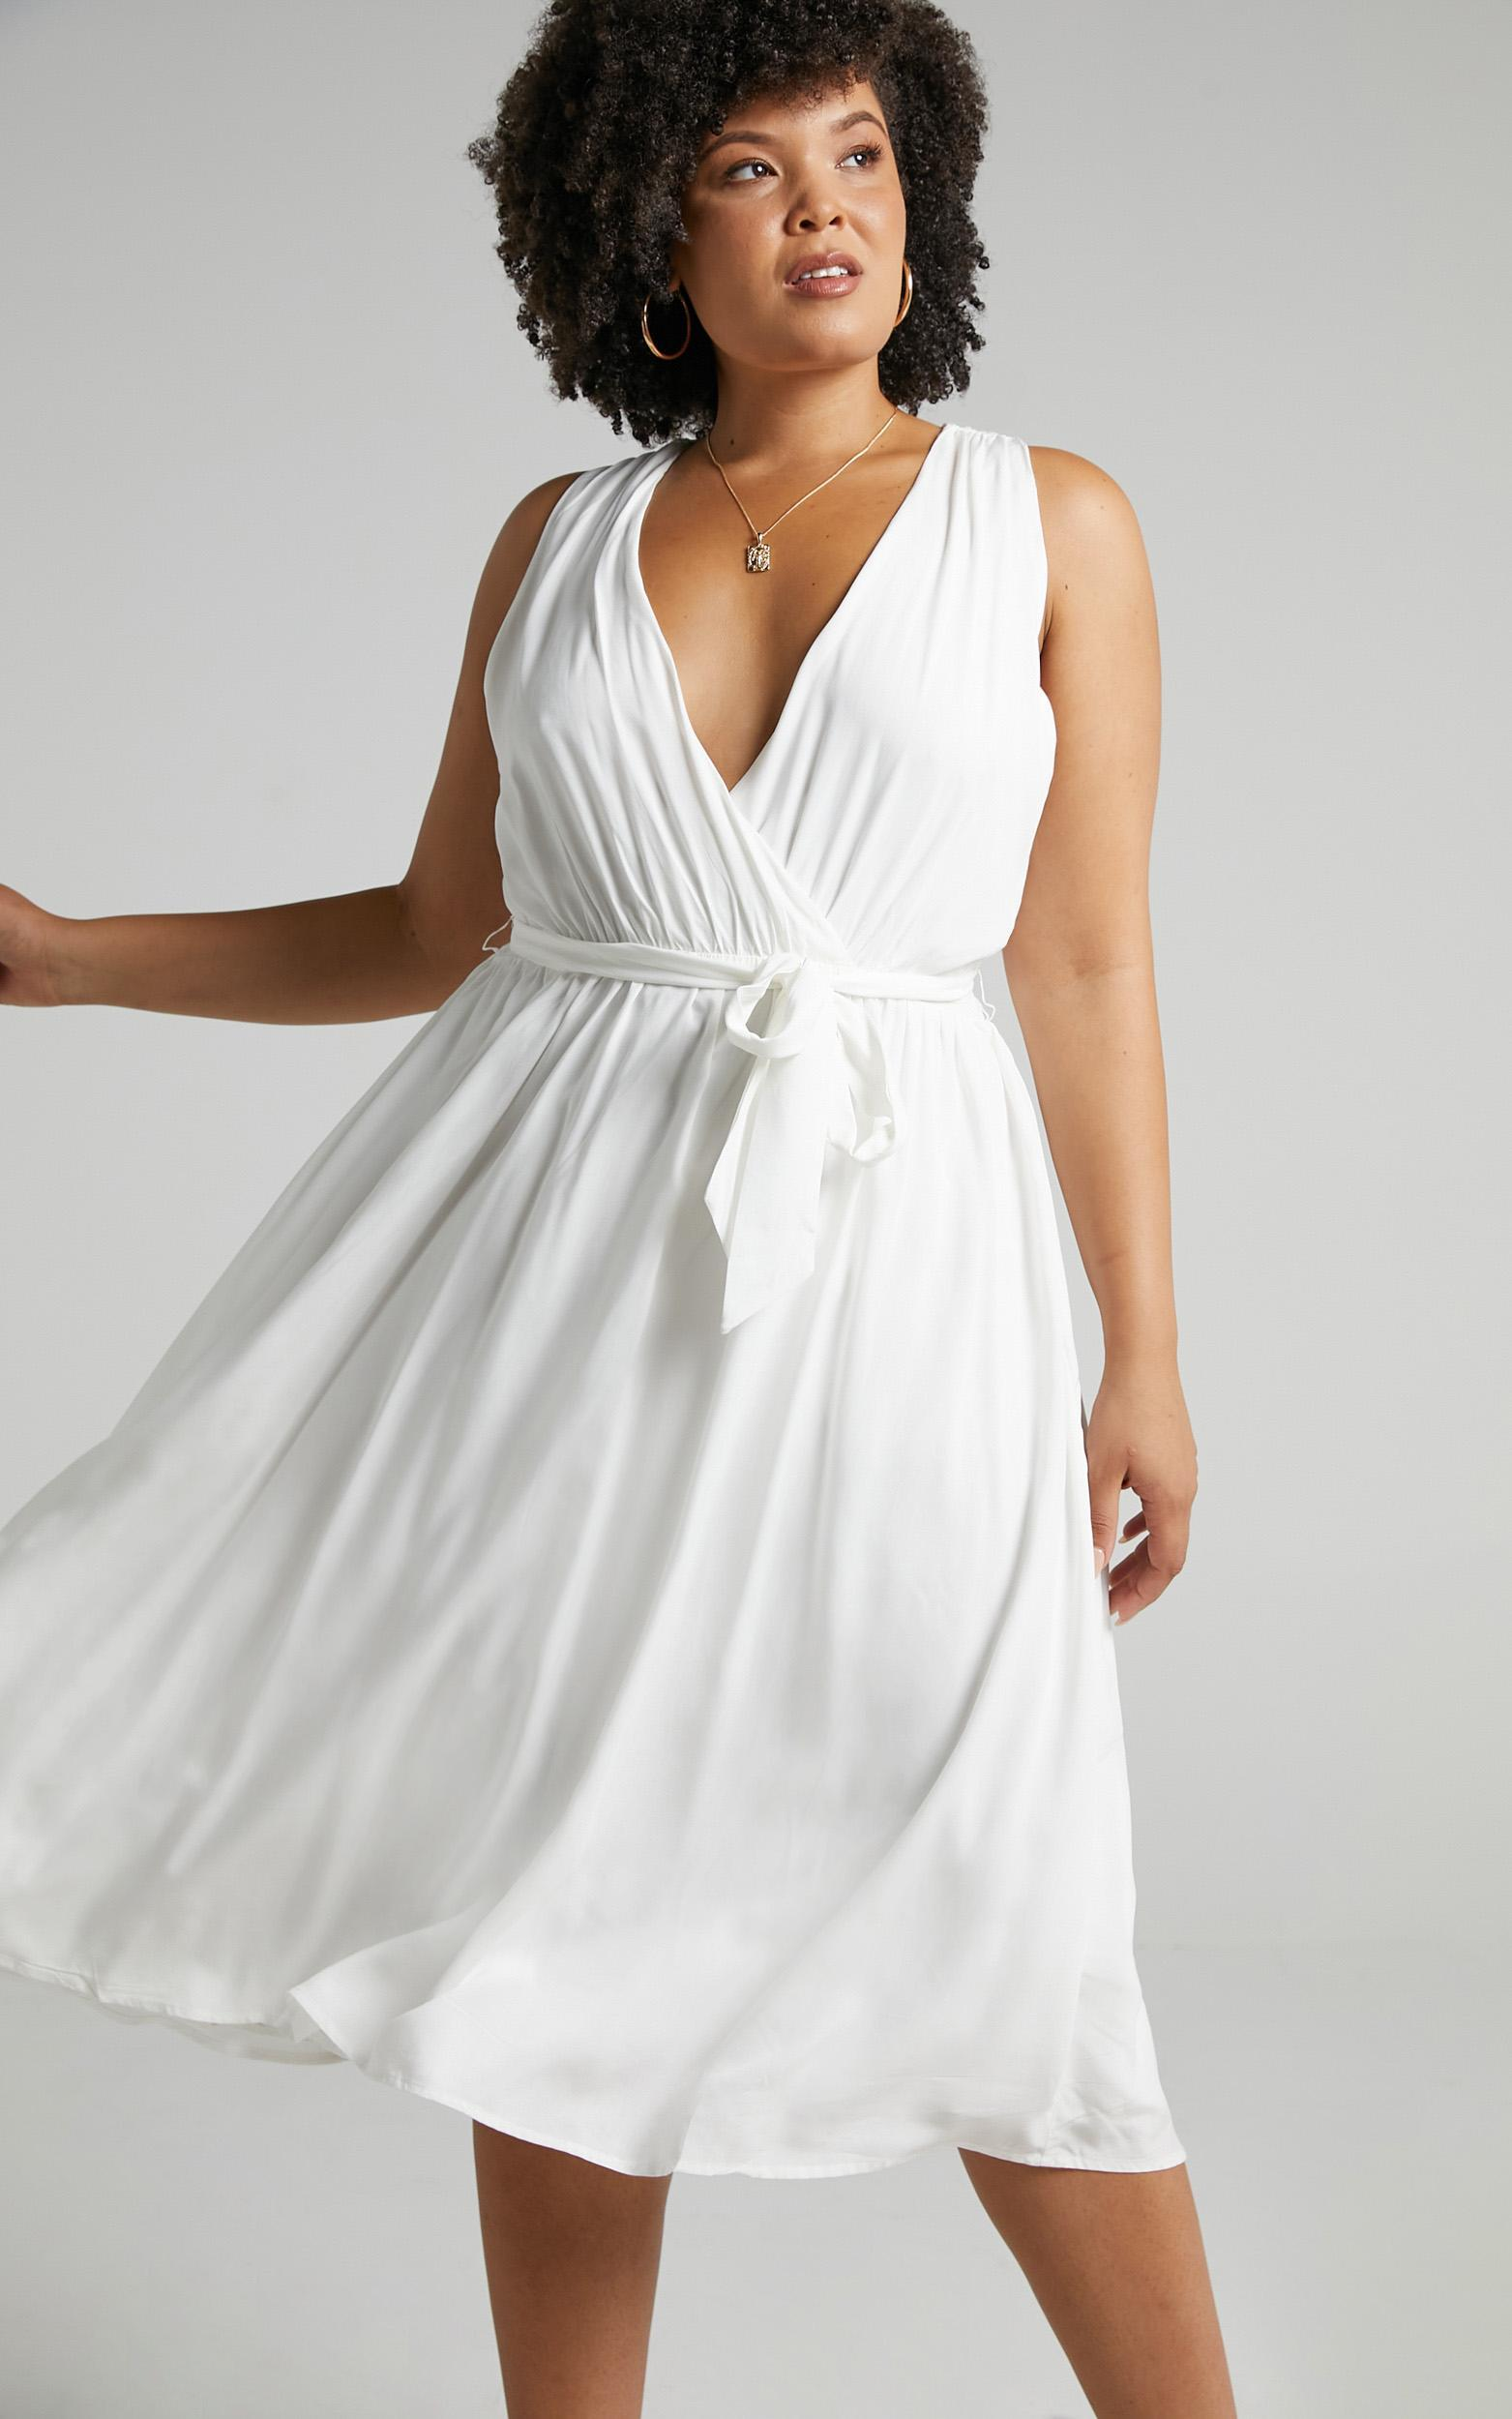 Arlais Dress in White - 6 (XS), White, hi-res image number null